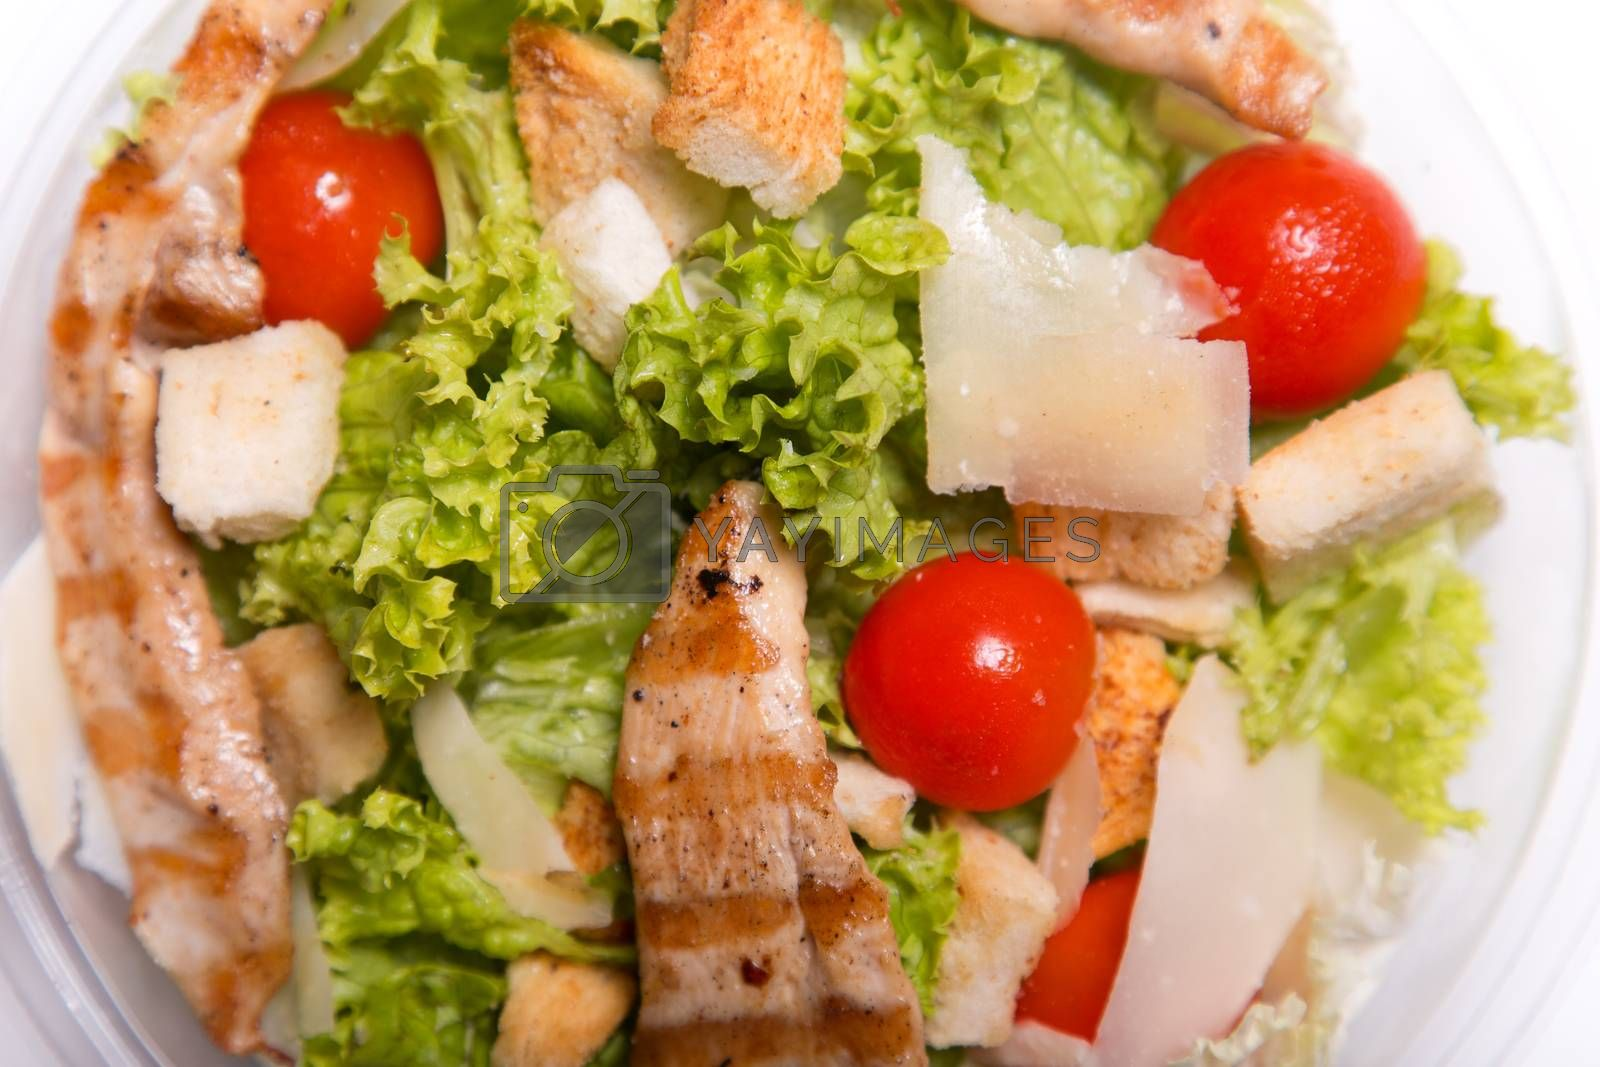 Delicious Caesar salad with grilled chicken meat, top view